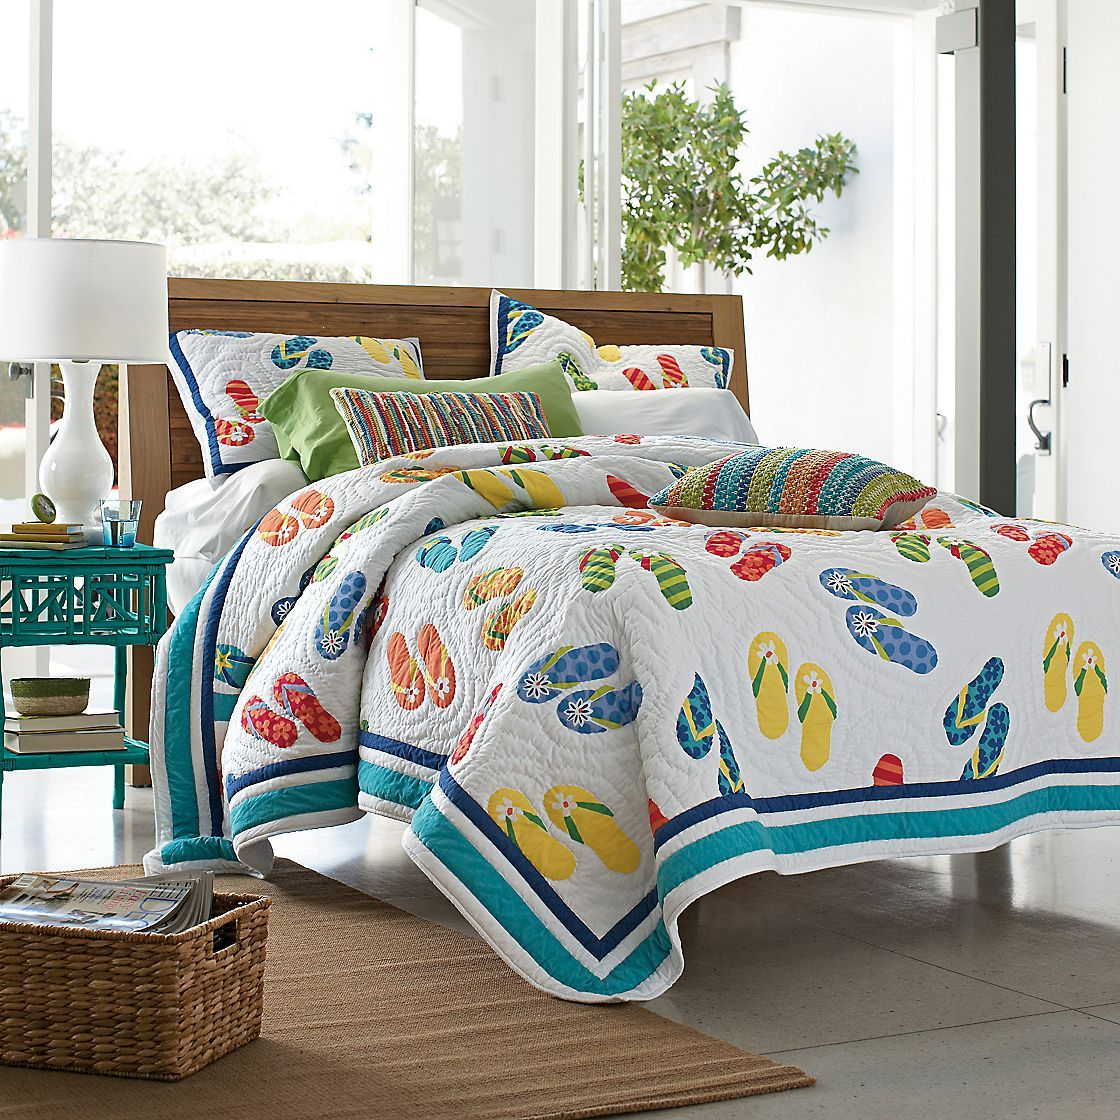 Capture the essence of the beach with this lightweight bedding!